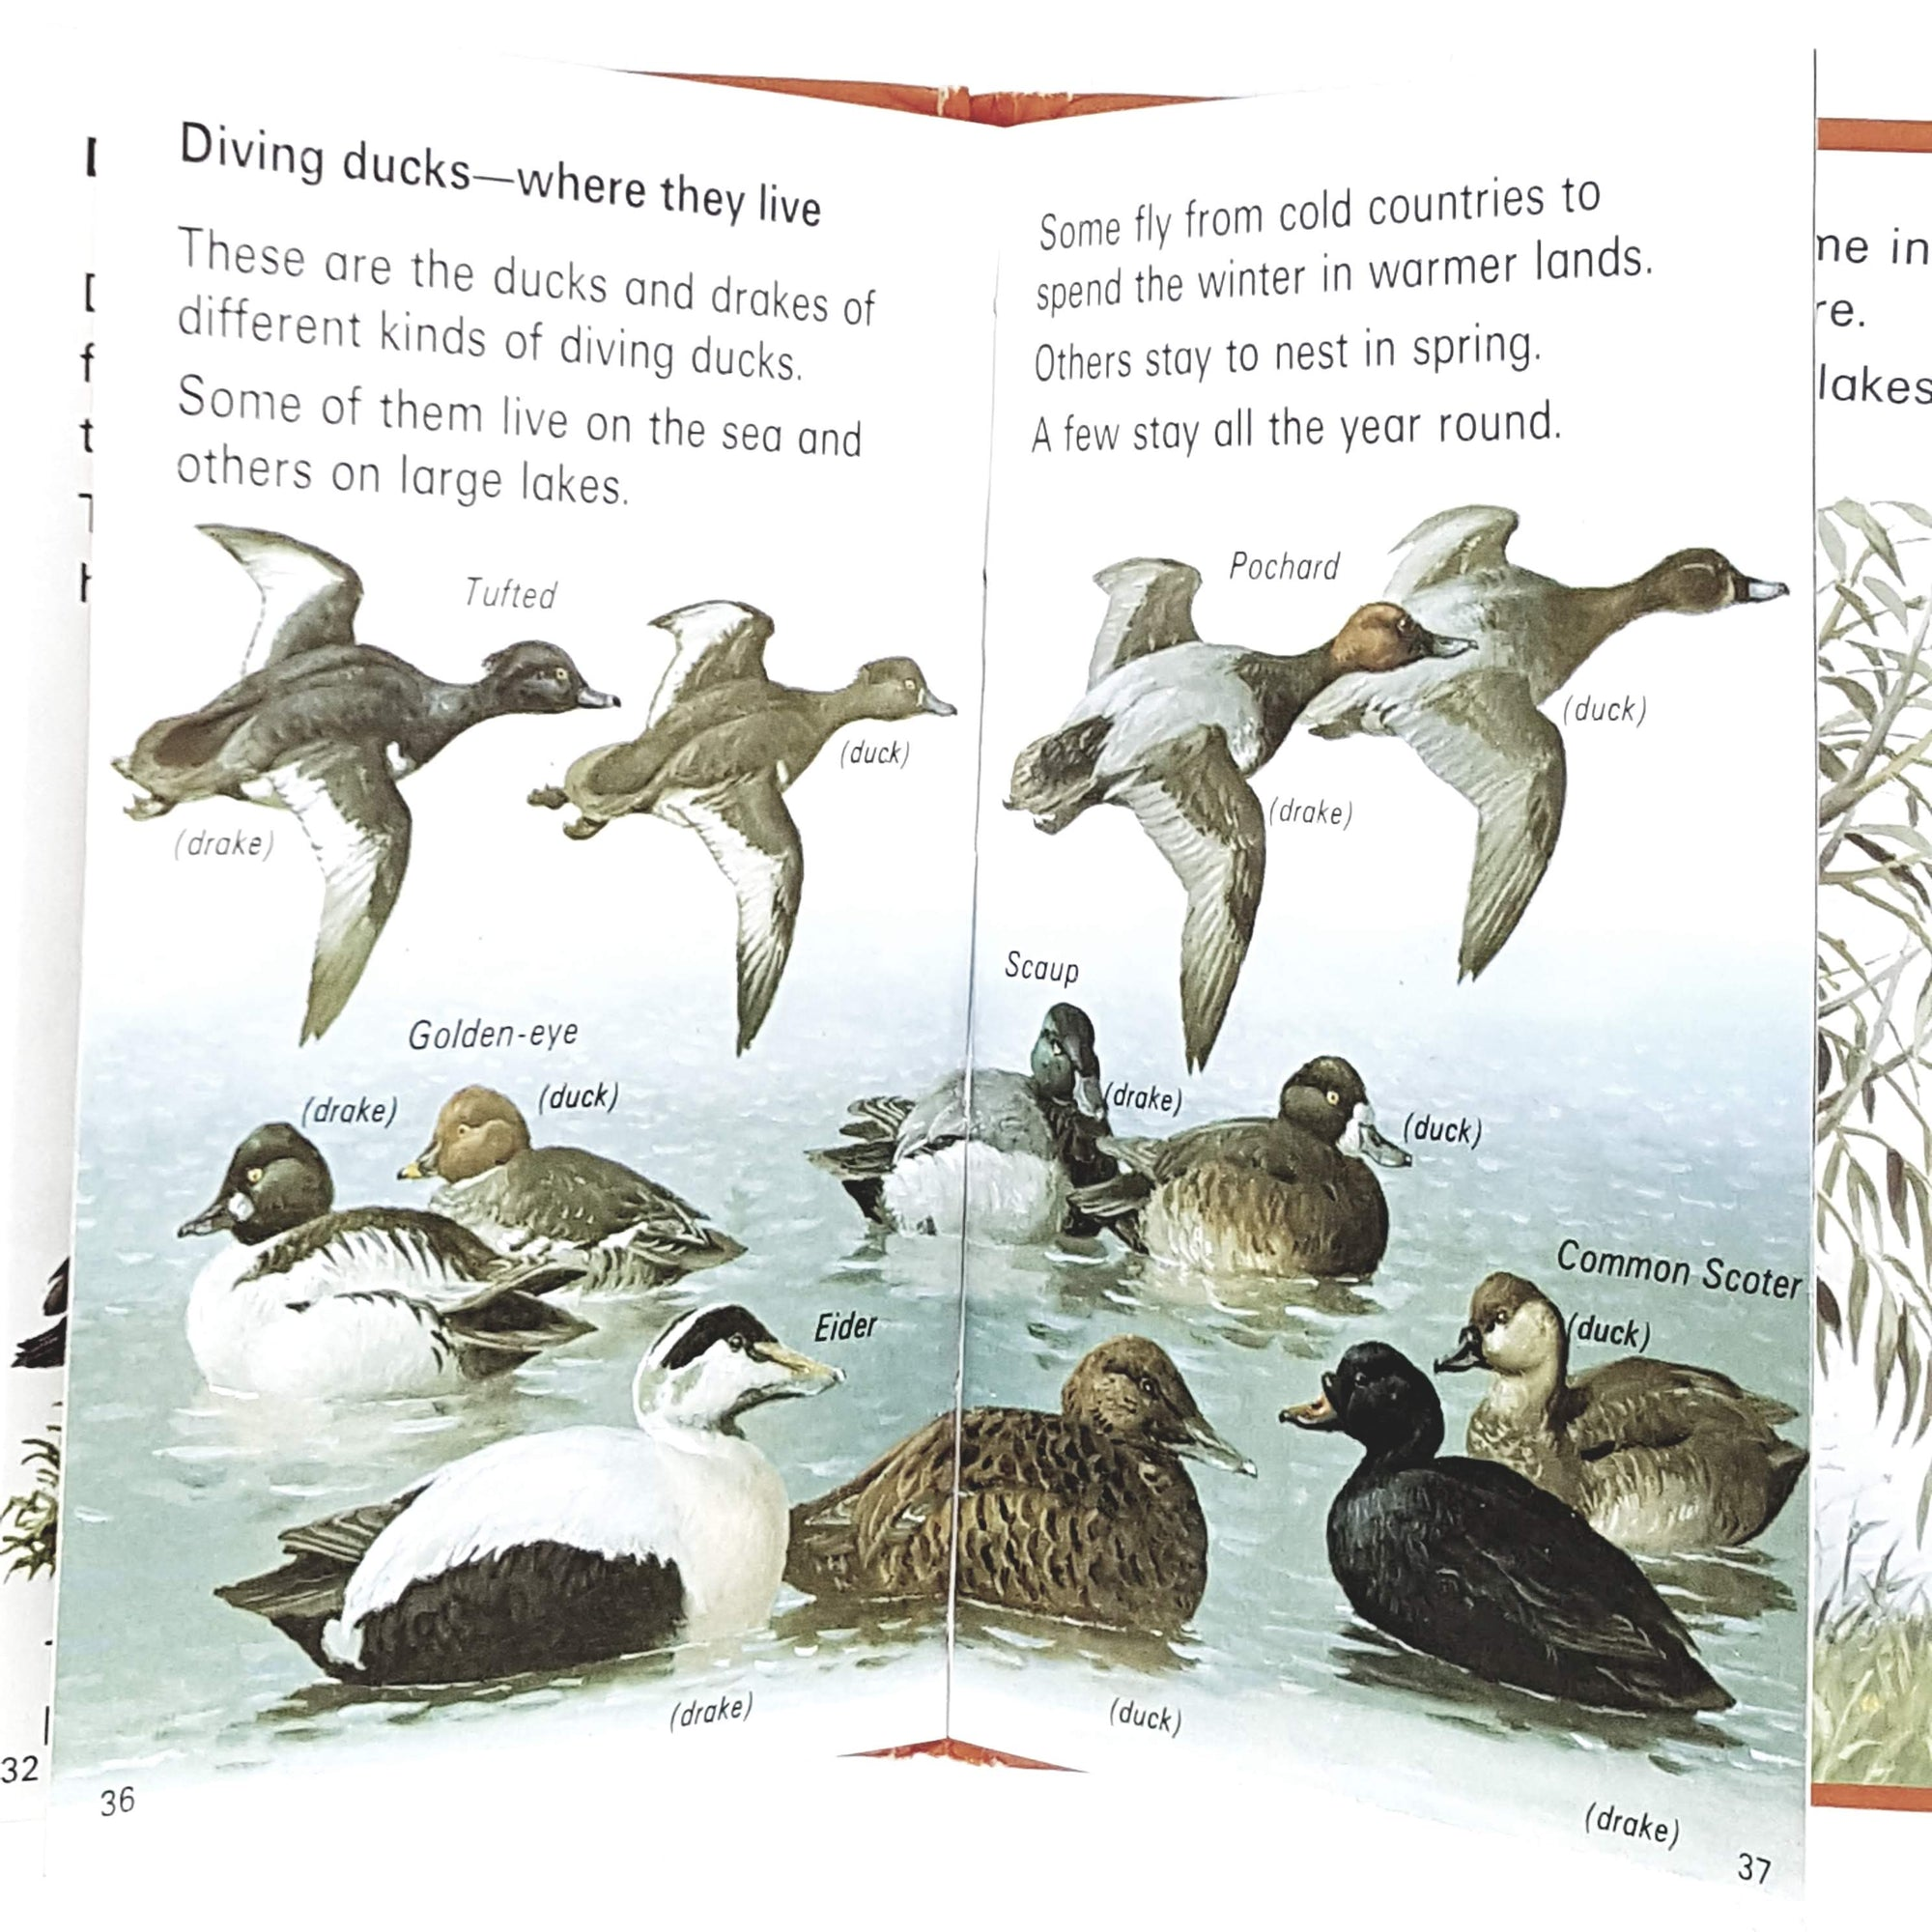 ladybird-leaders-ducks-and-swans-1973-country-house-library